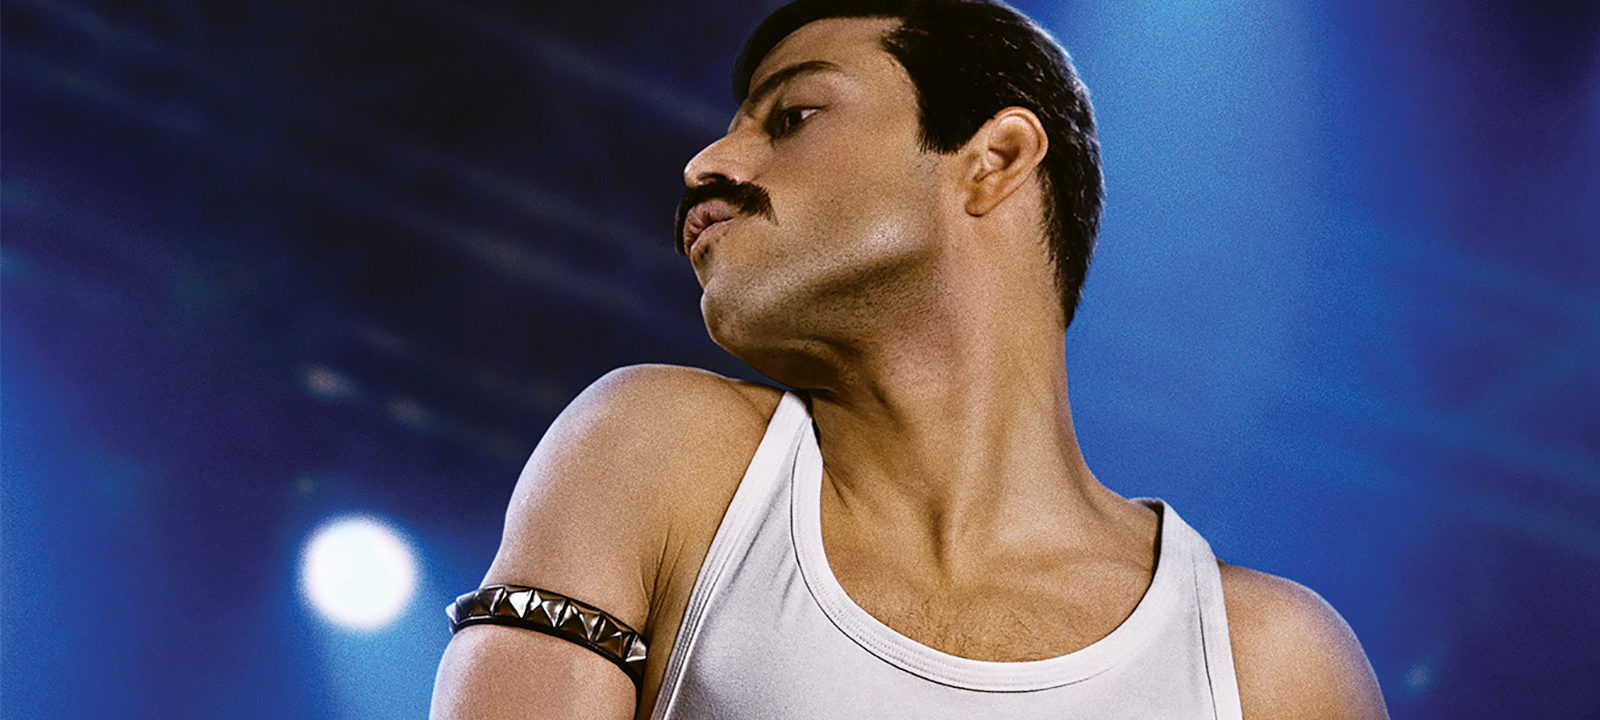 anglo_2000x1125_freddiemercurymovie copy